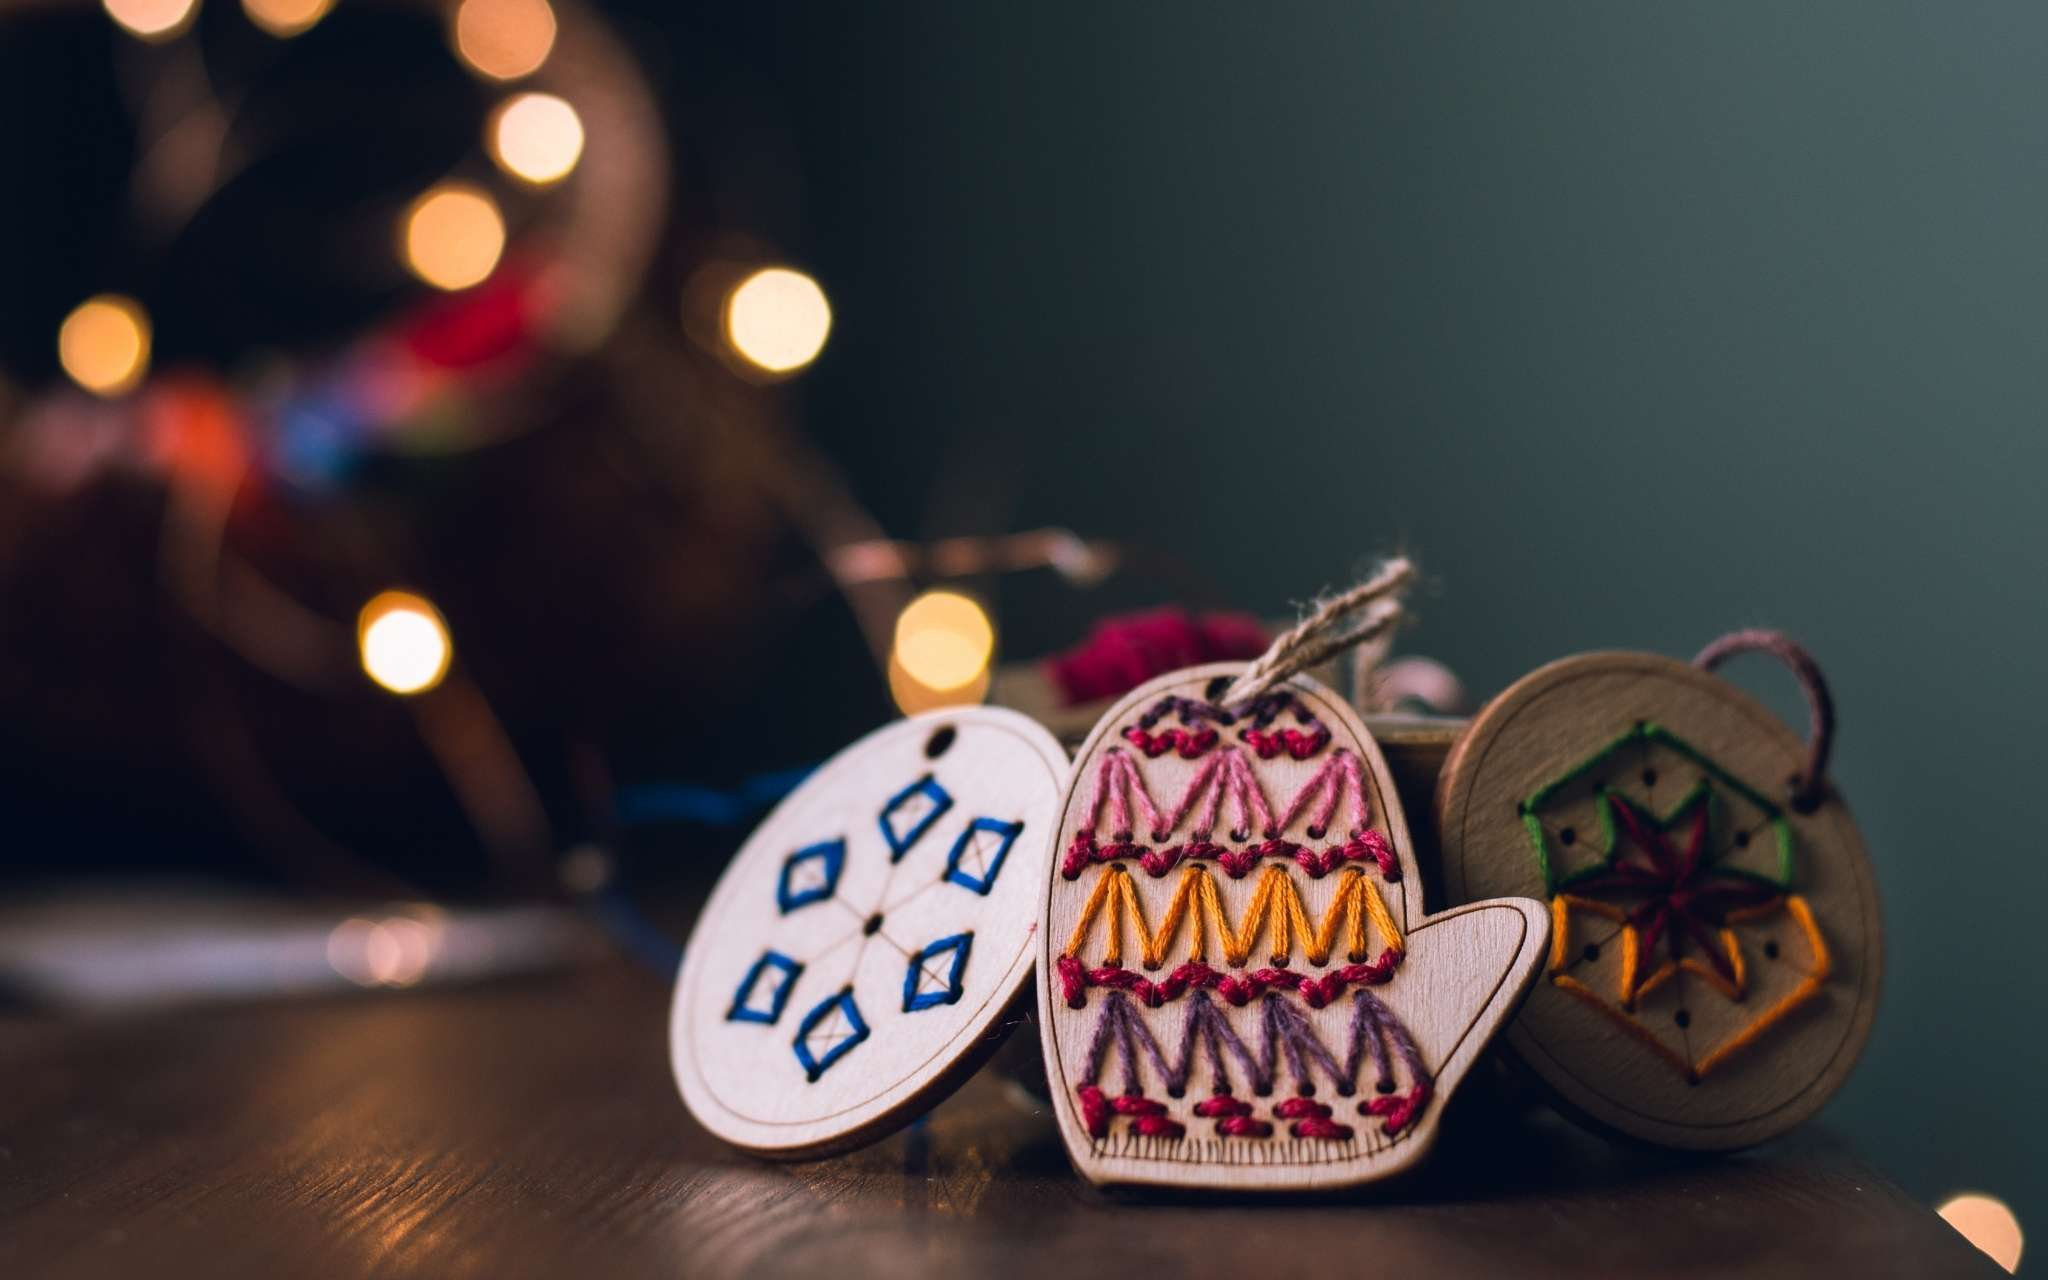 Wooden hanging ornaments that have been hand stitched in bright colours are gathered on a wooden surface, with fairy lights and a tree blurred behind.